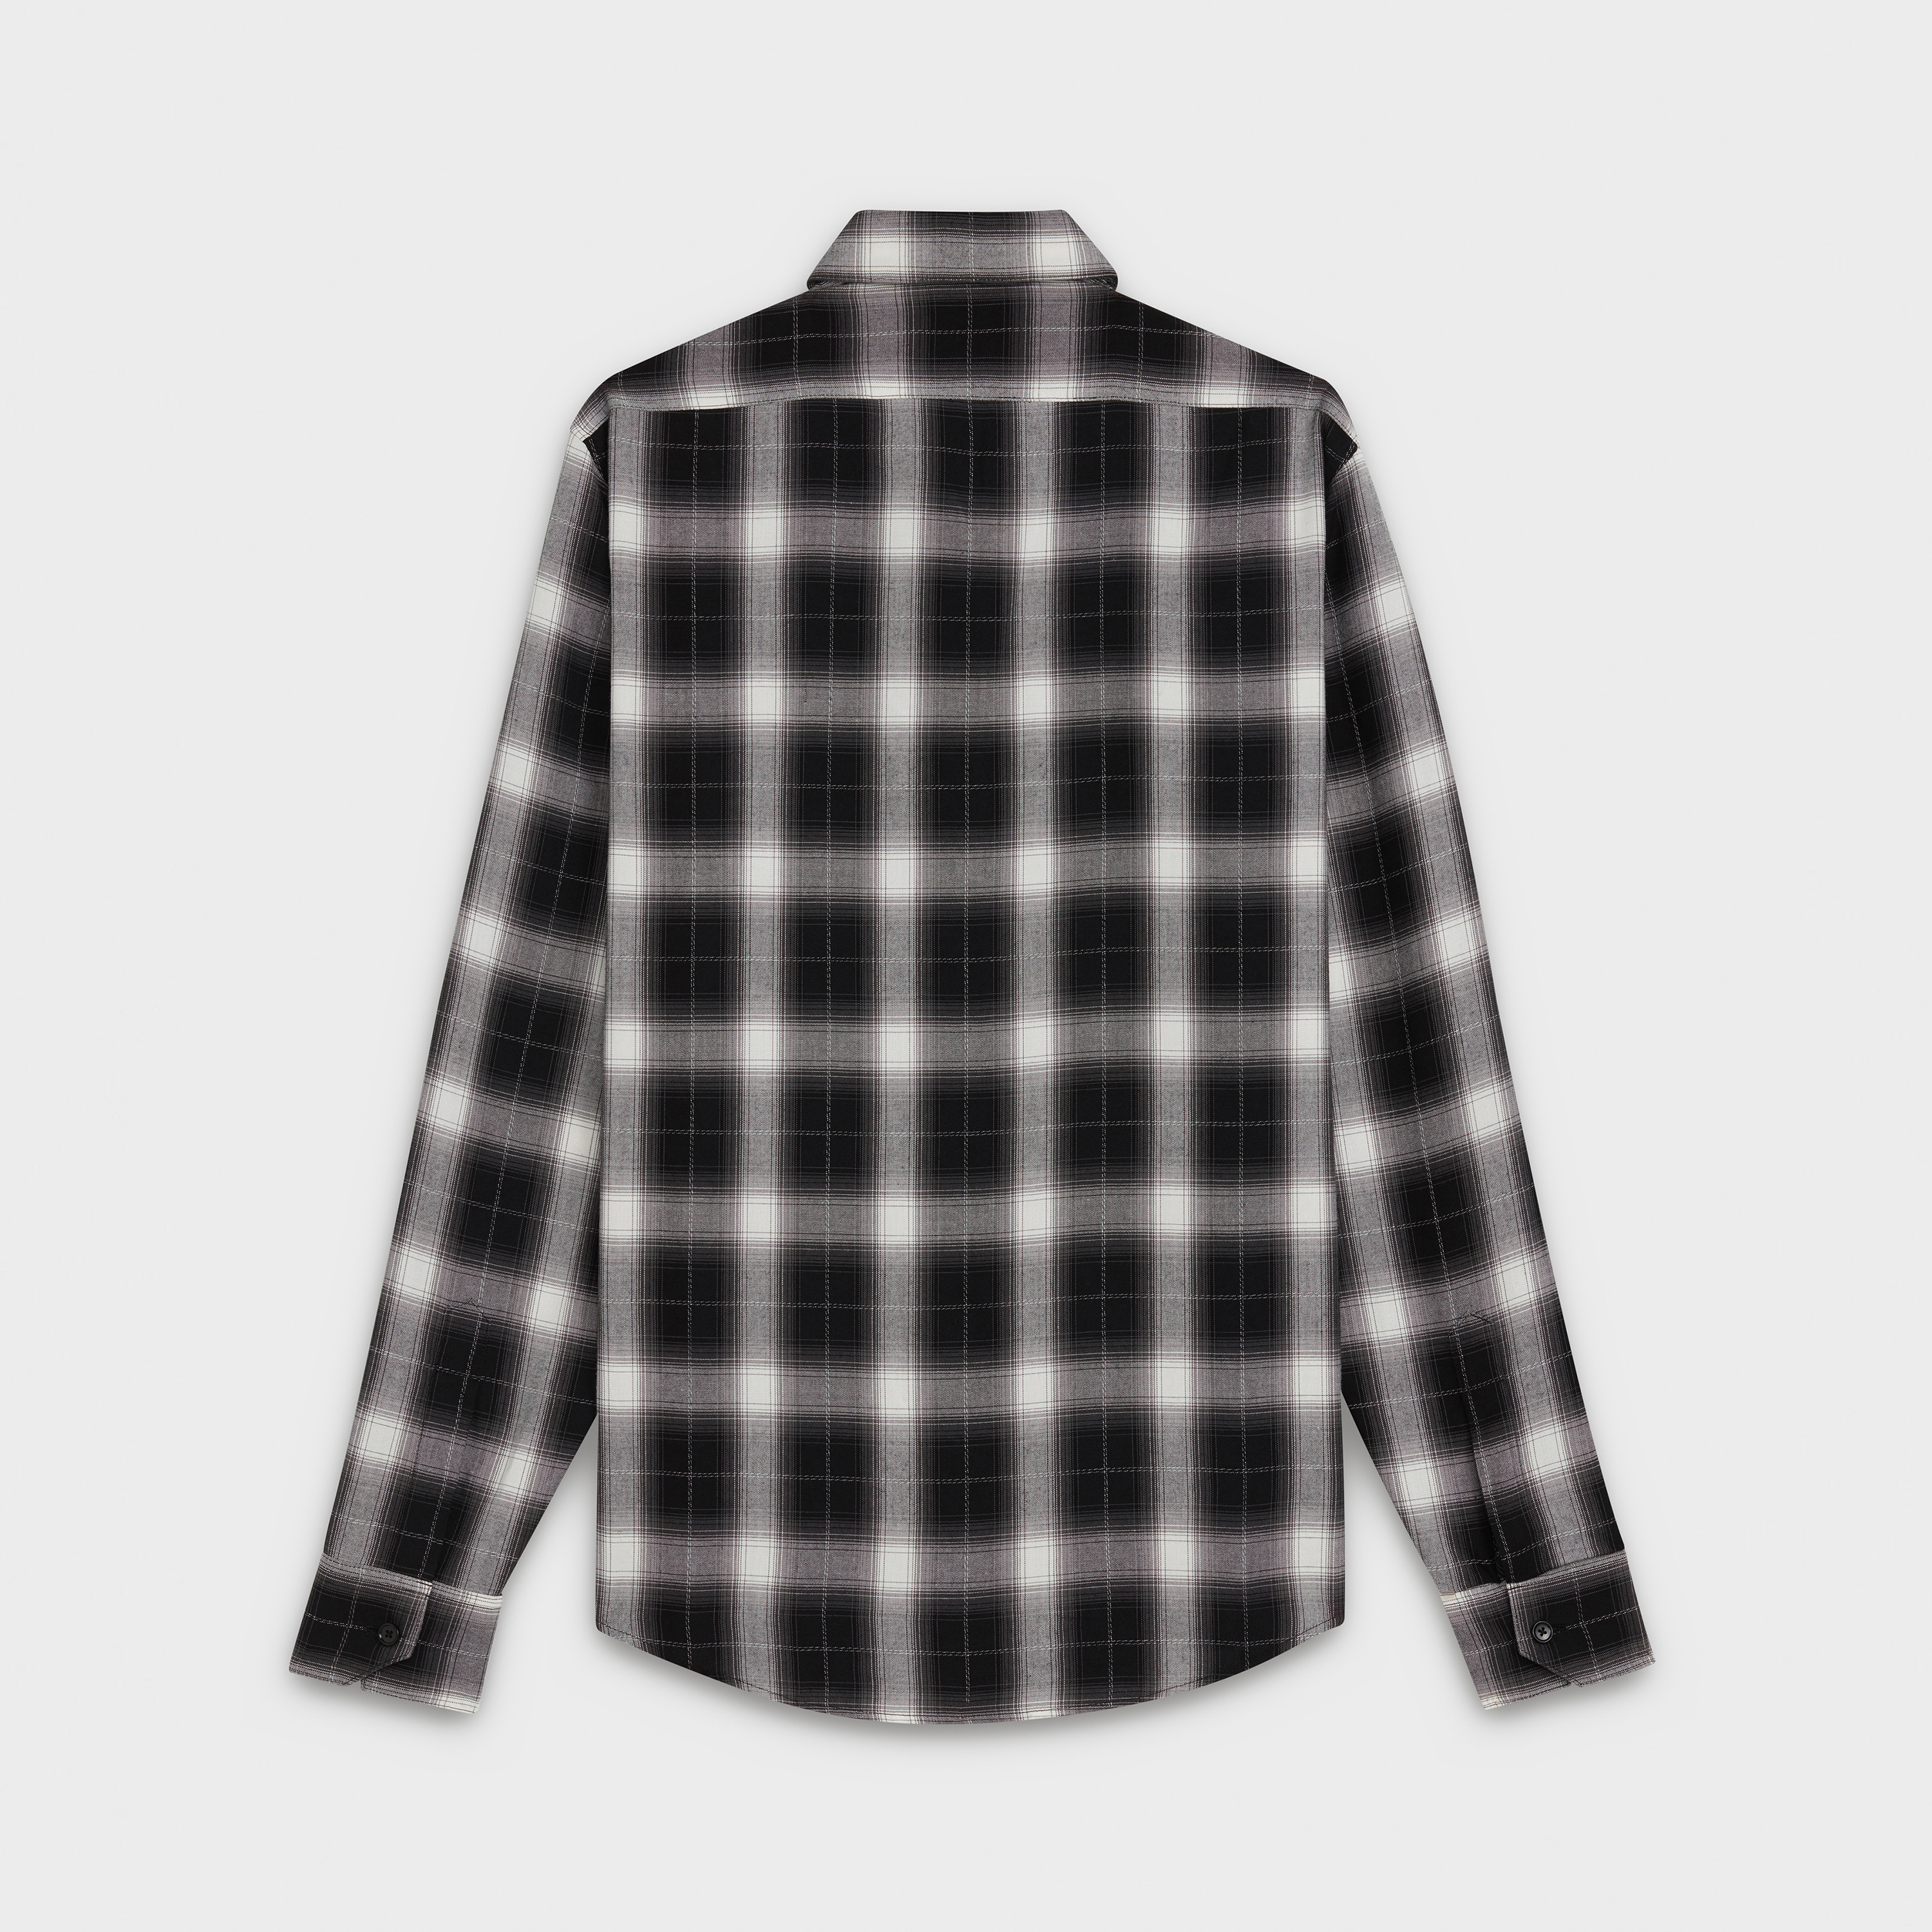 classic shirt in graded checker printed viscose with modern collar | CELINE